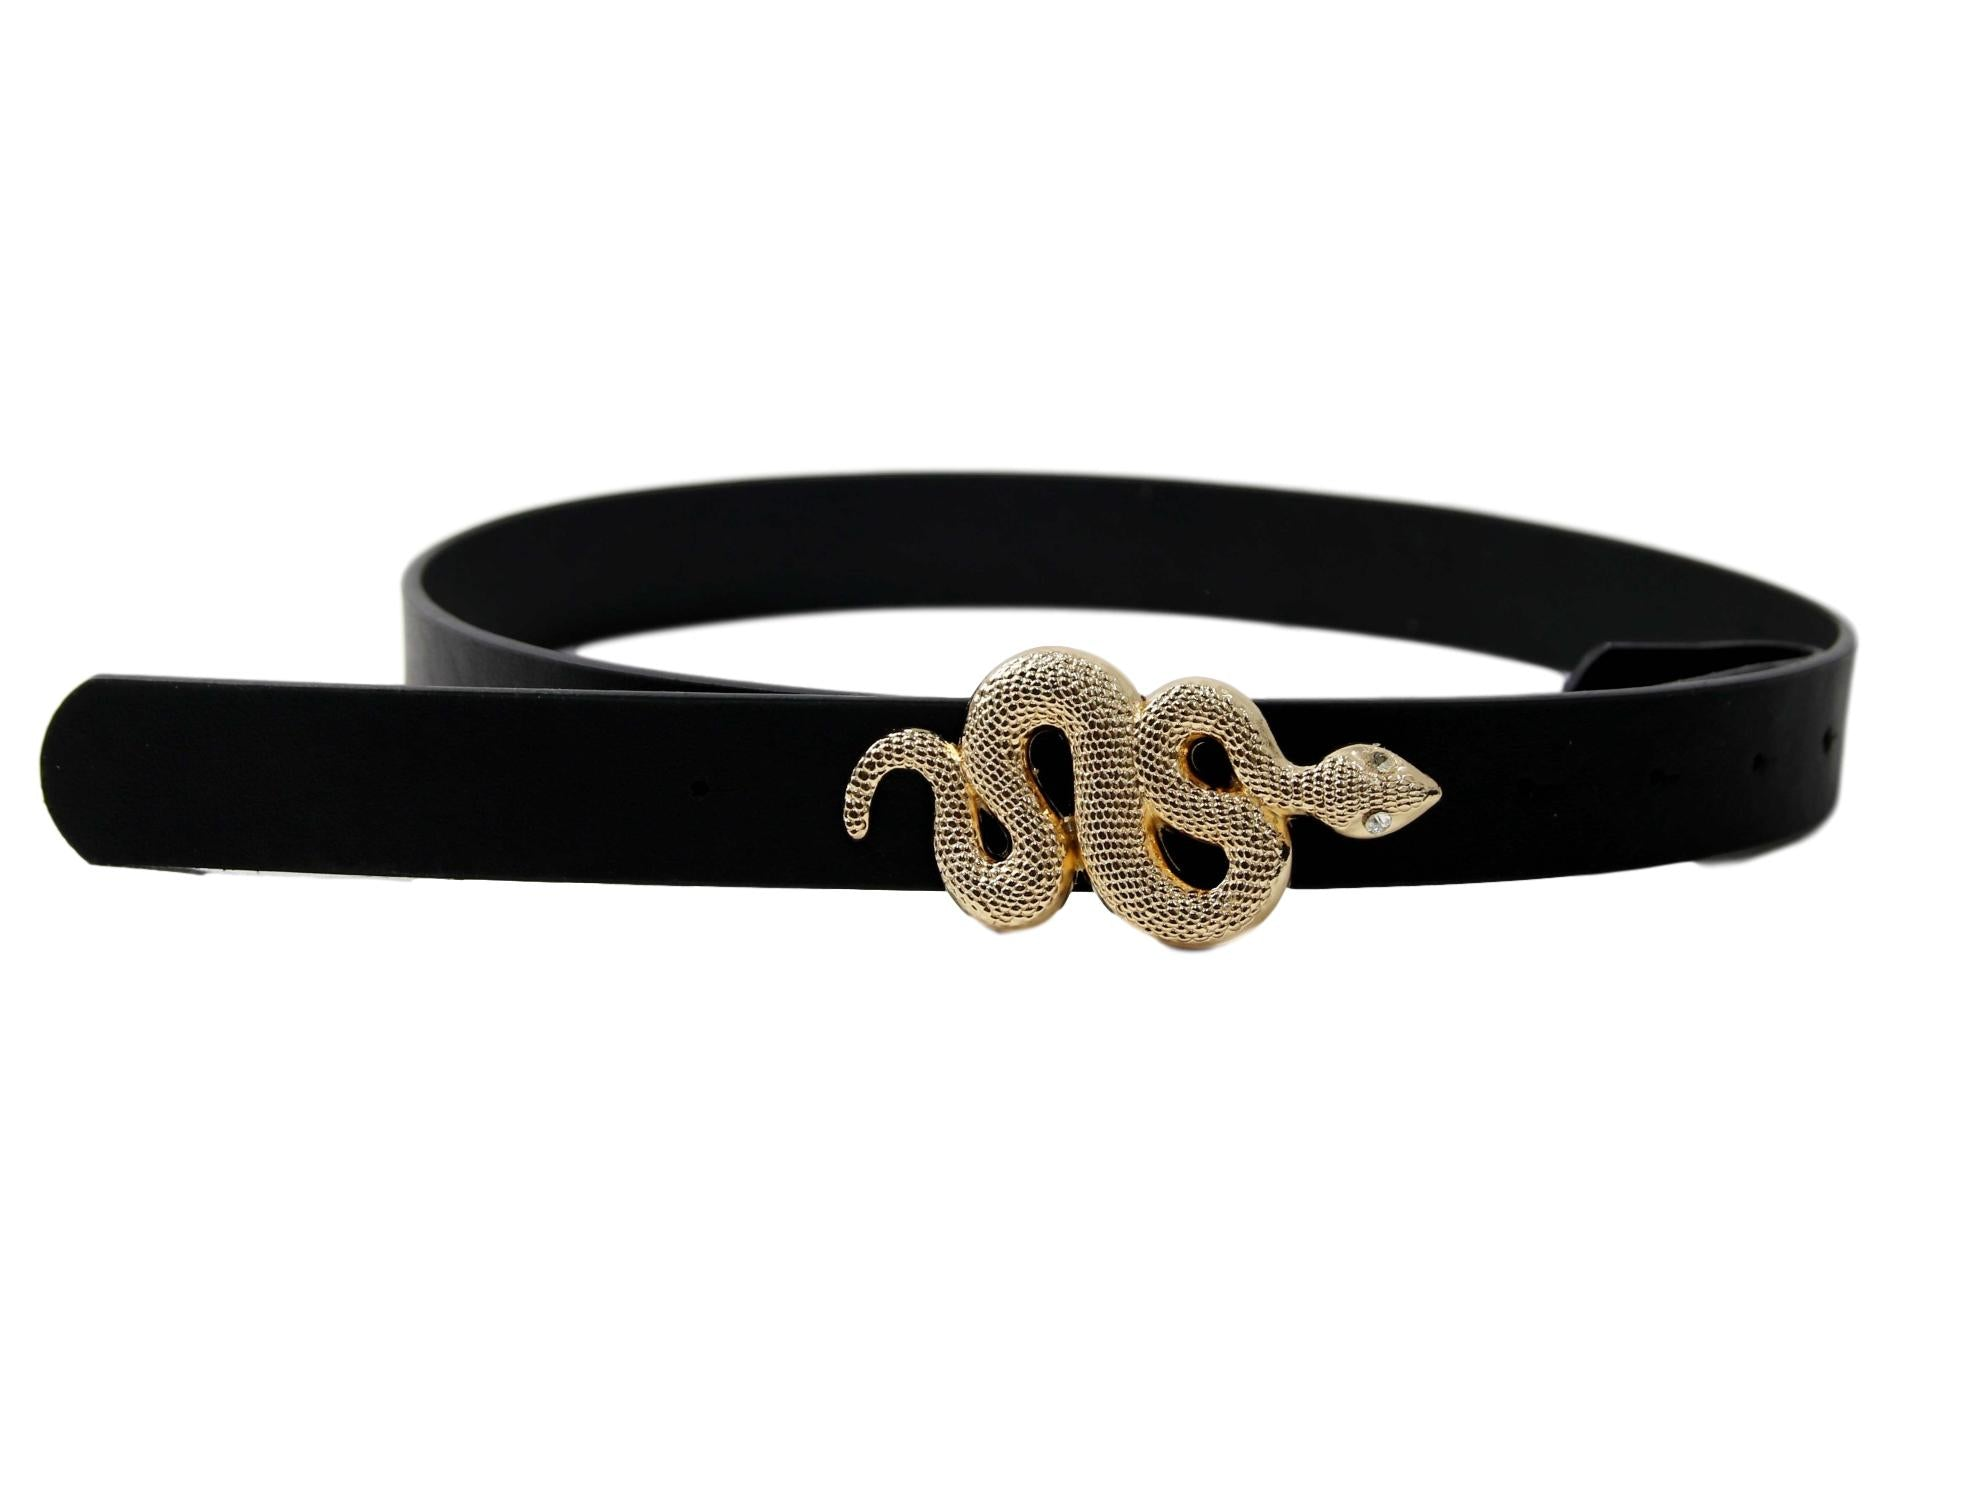 Gold Snake Buckle Black PU Belt